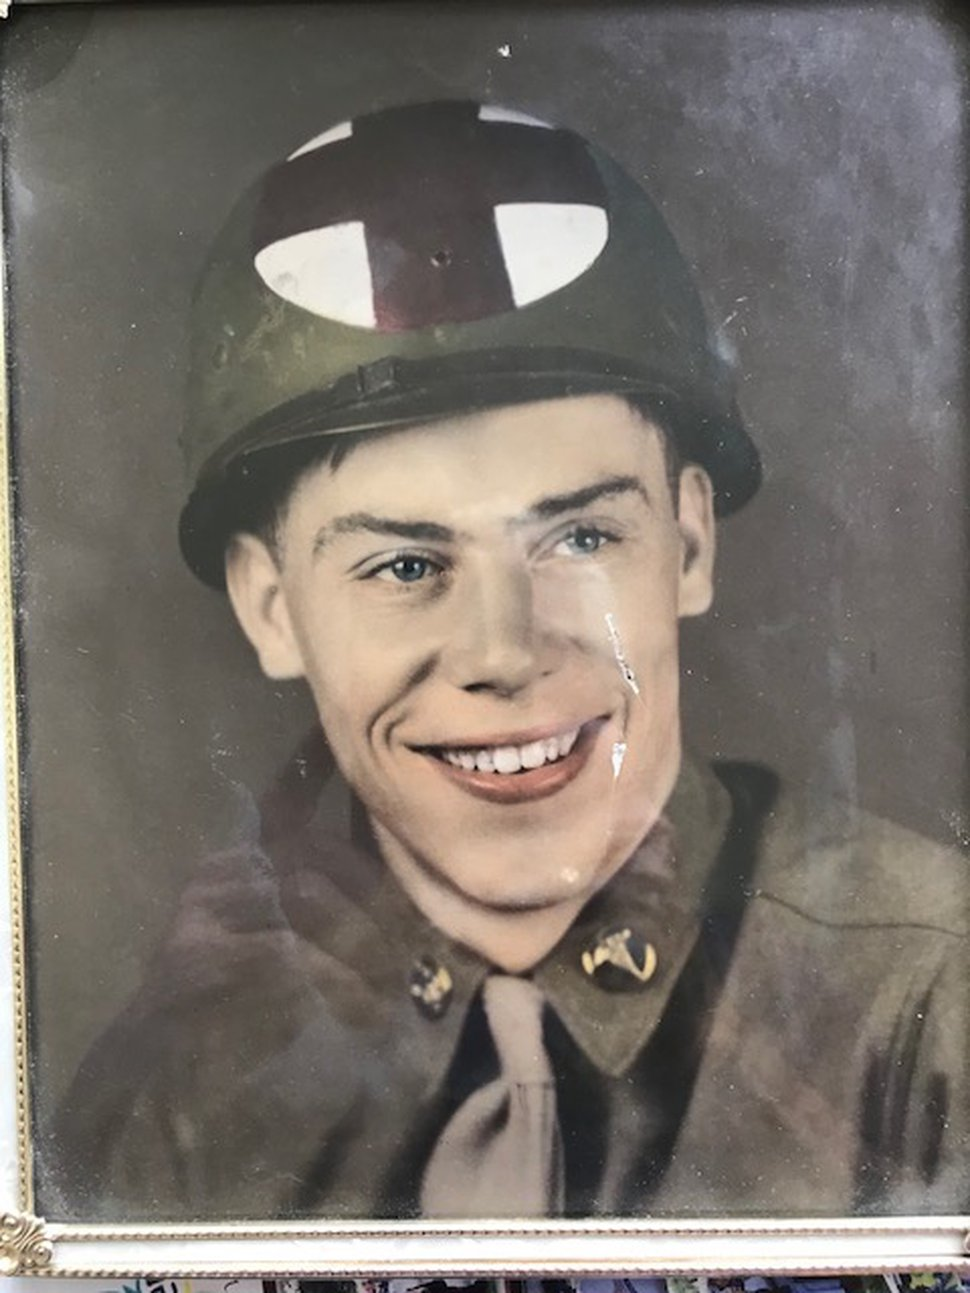 (Photo courtesy of Van Dewerker family) Army Cpl. Patrick Van Dewerker, of Brigham City, went missing during the Korean War in 1950, according to military records. His family hopes his remains are among those the North Korean government provided to the United States in July 2018.